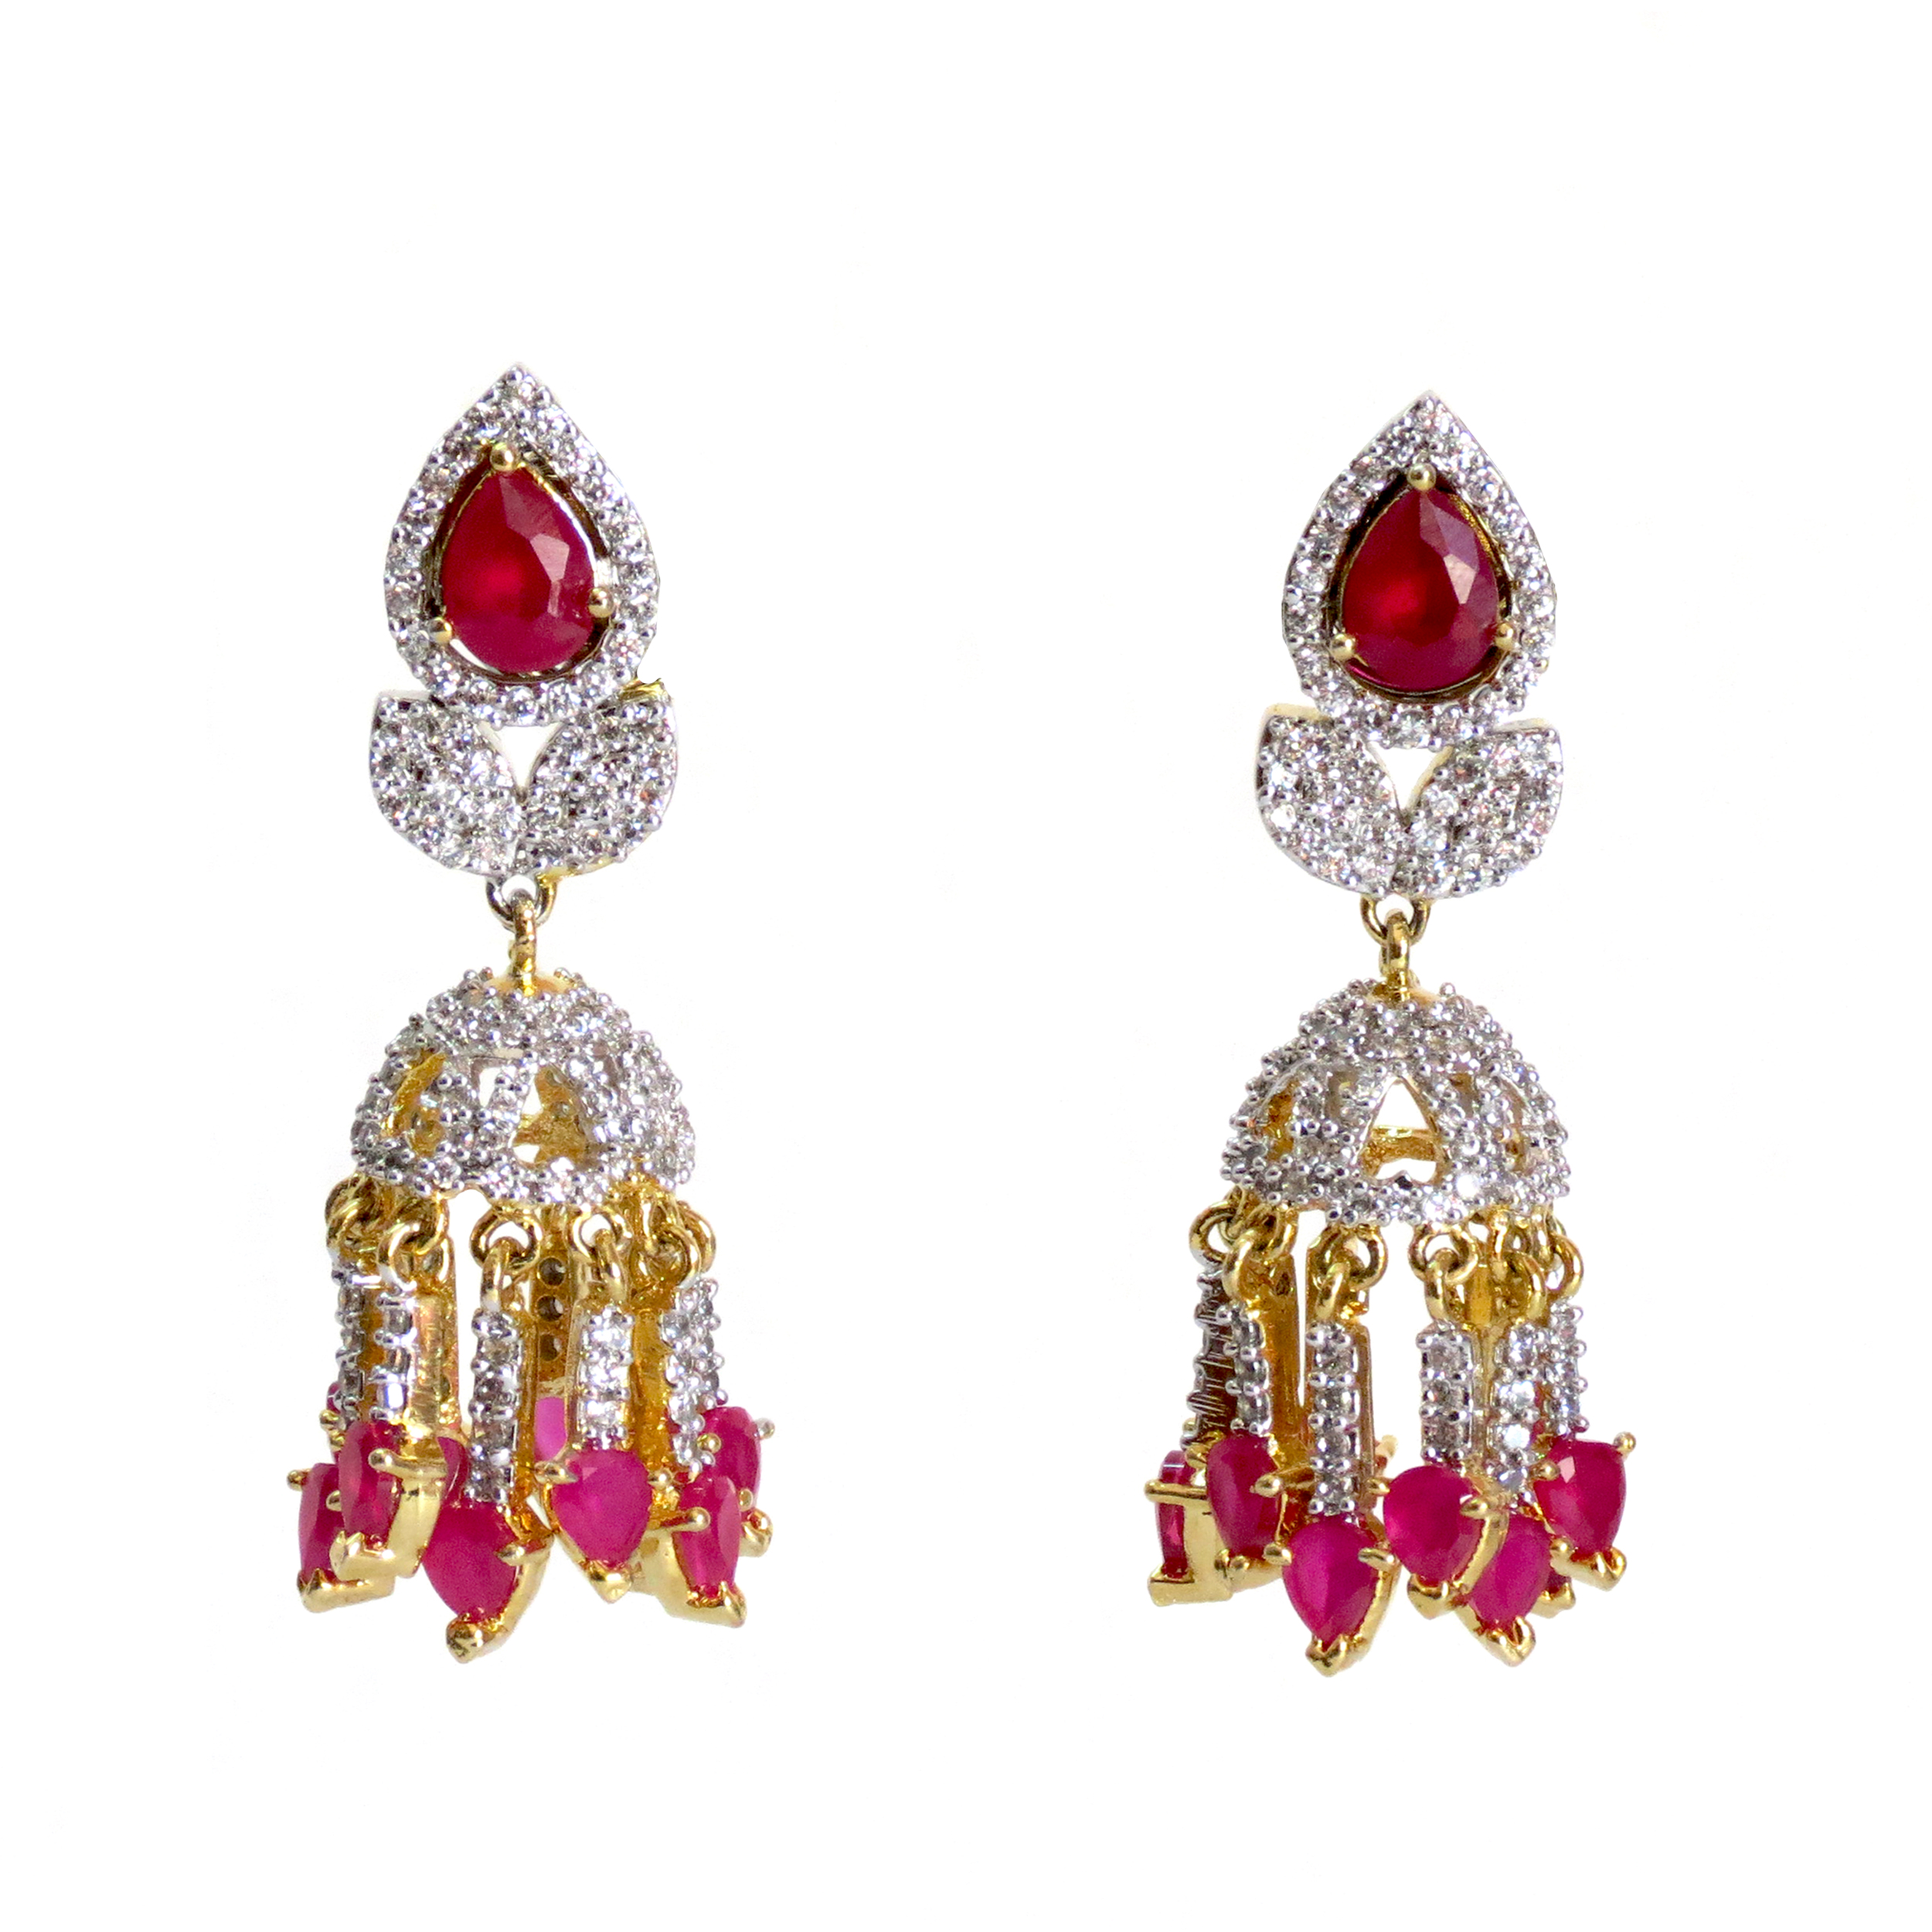 golden set jewellry parincaa earring stone american choker women for fresh gems images search red s modern accessesories necklace diamond antique jewellery bridal beautiful design website jewel earrings